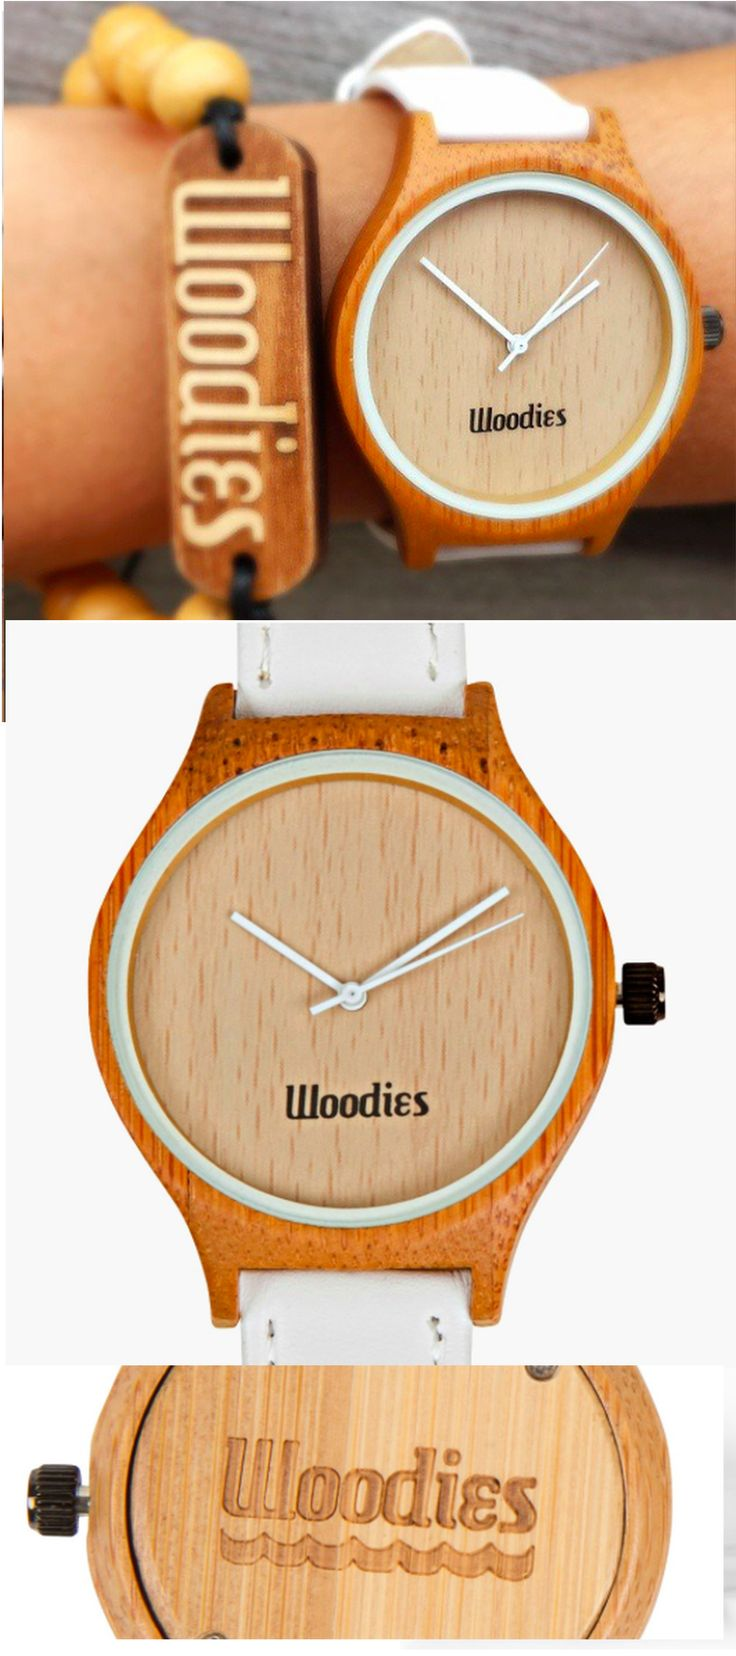 com bamboo l for dp by wood tree people quartz amazon men case genuine watch watches cowhide leather movement miyota wooden strap